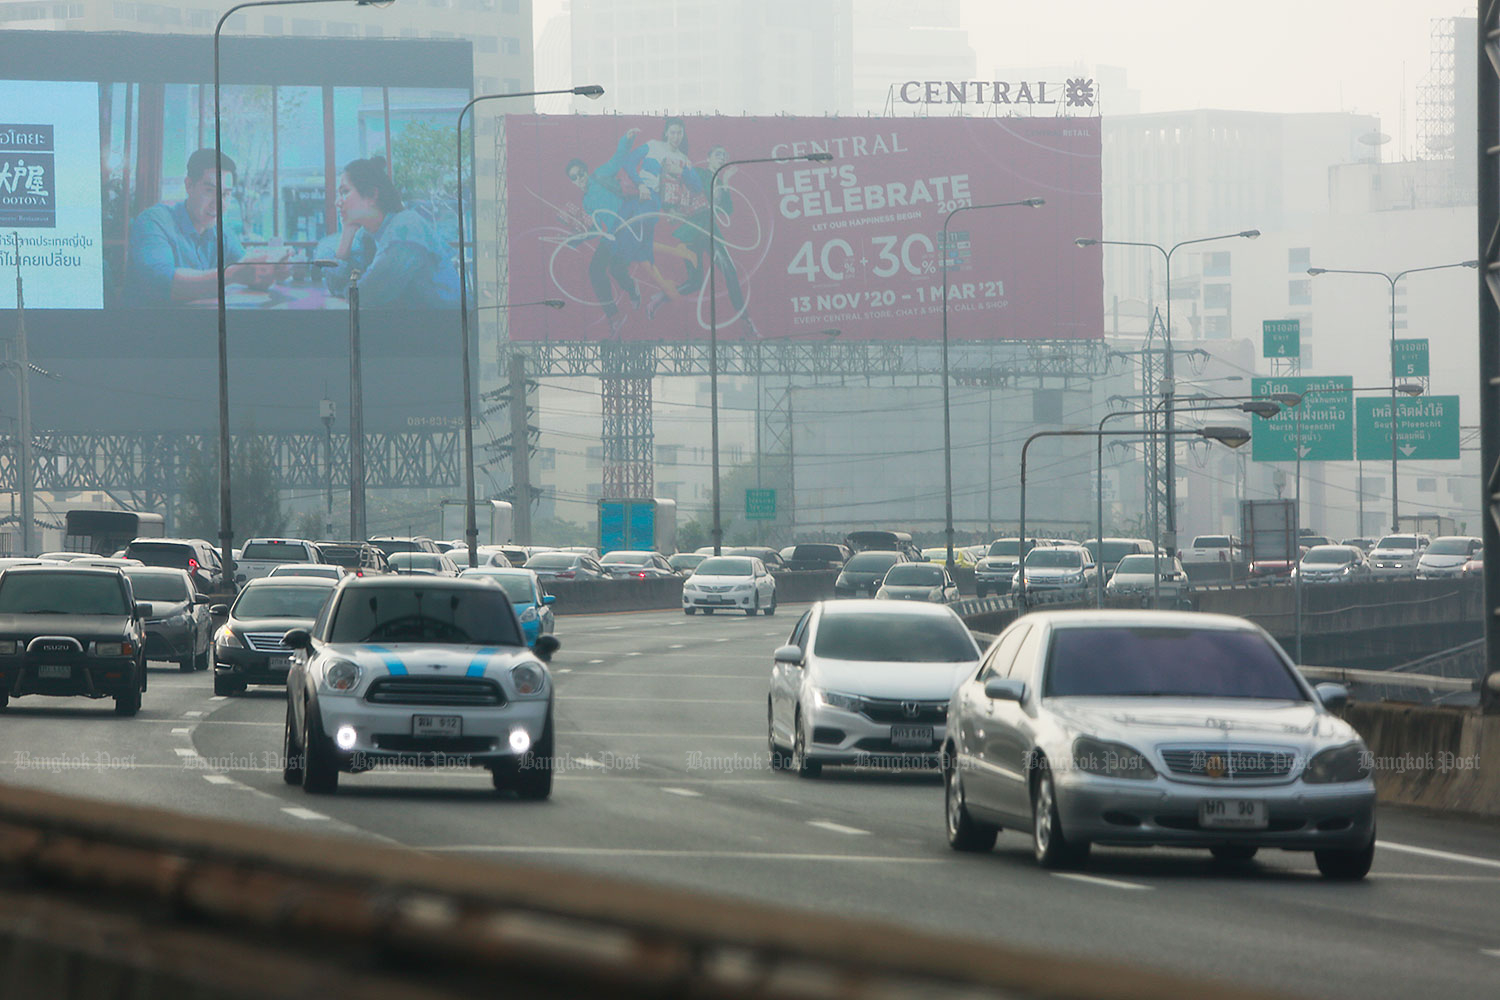 PM2.5 dust particles blanket the sky as motorists drive along an elevated highway.(Photo by Arnun Chonmahatrakool)